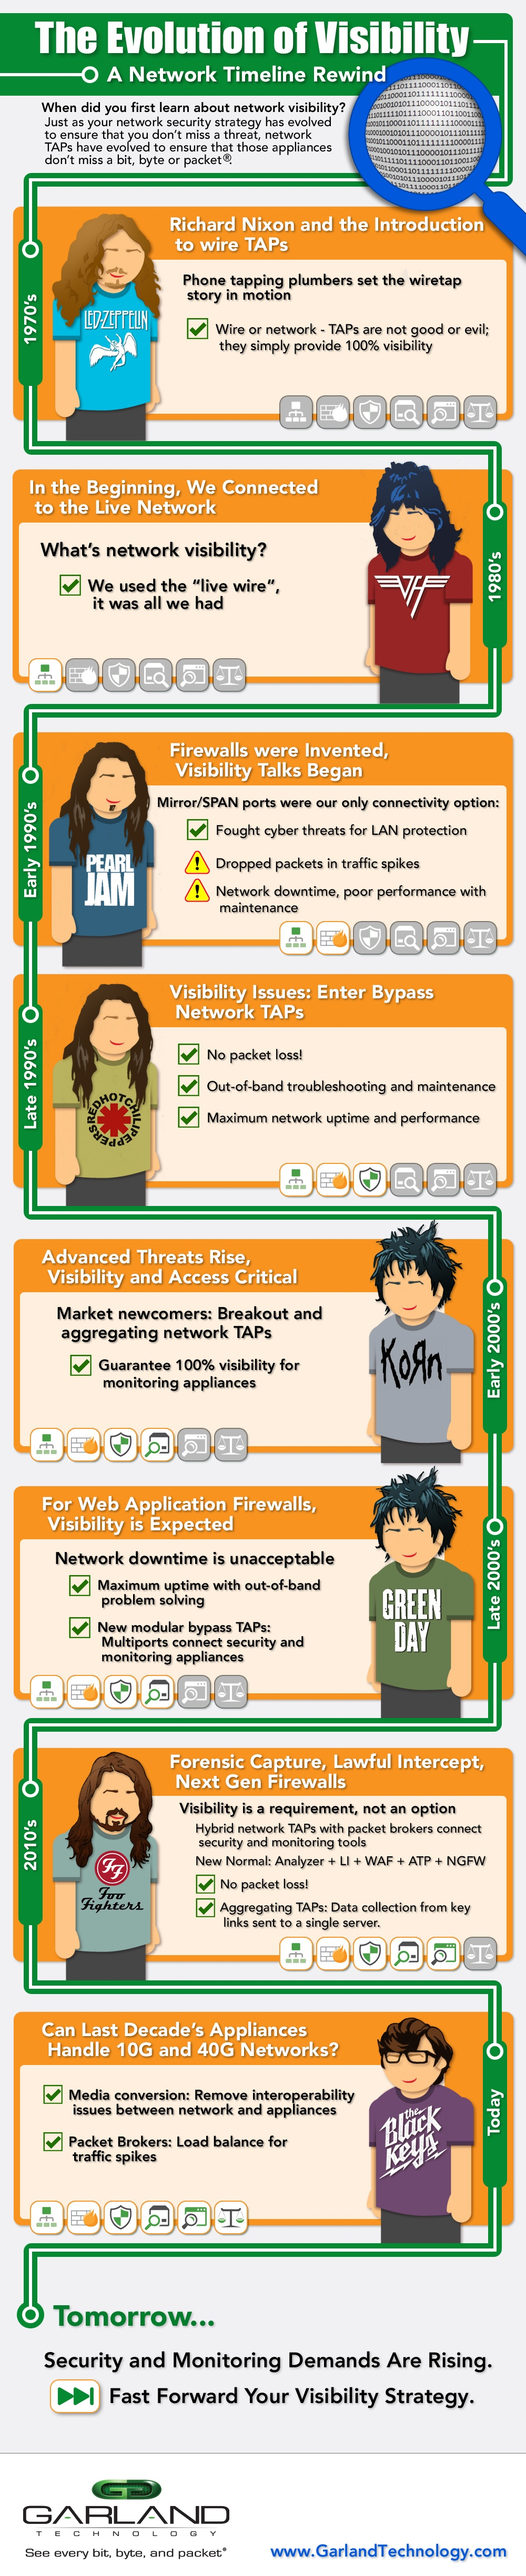 The Evolution of Network Visibility